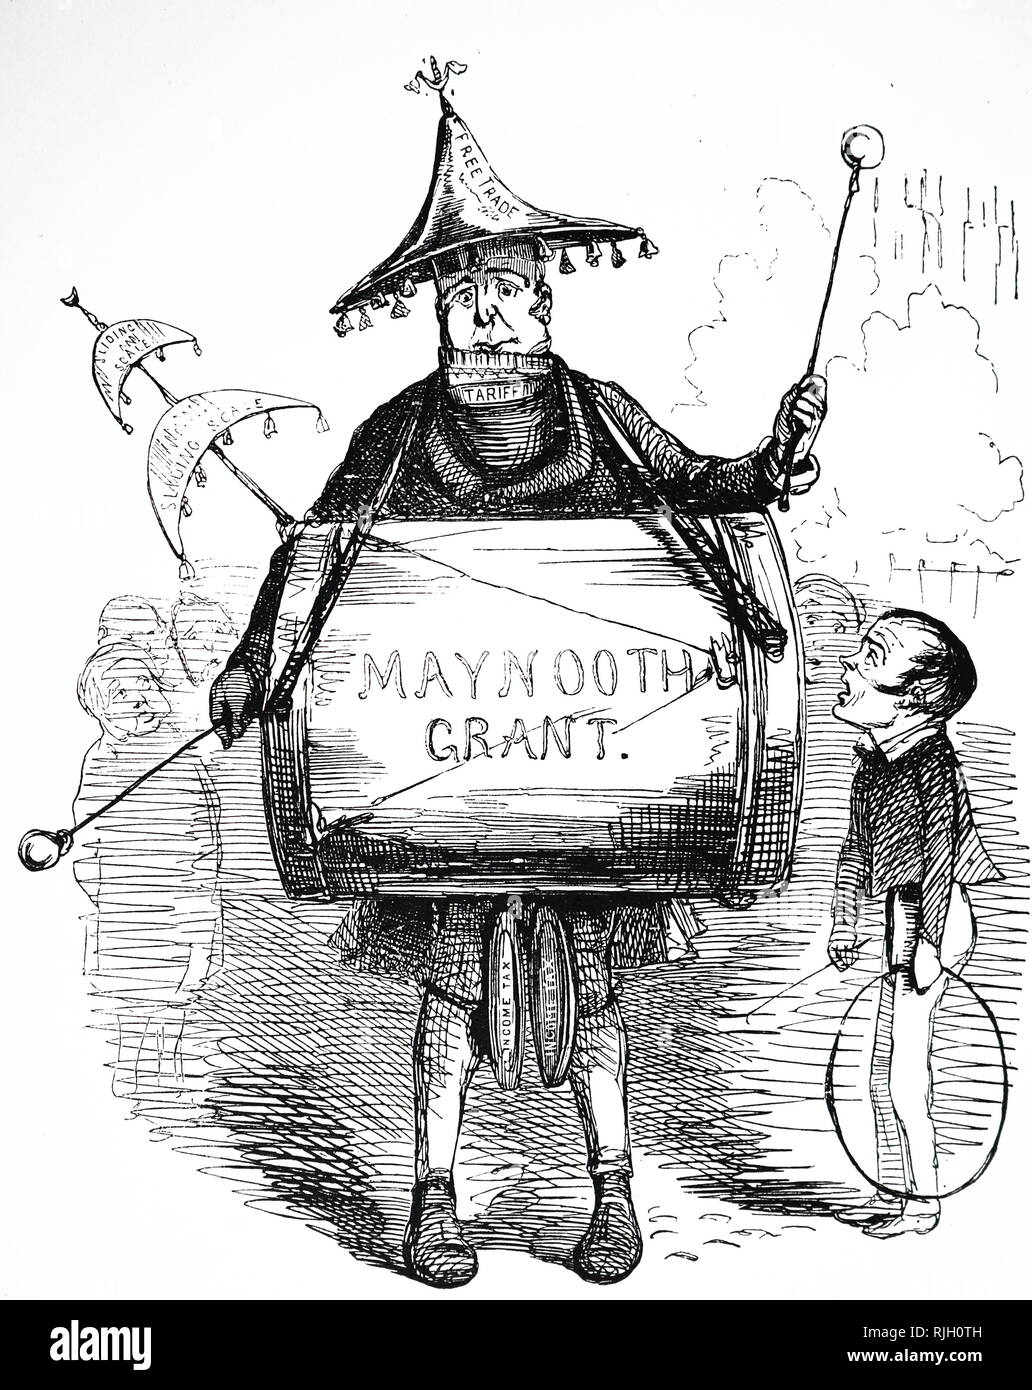 A cartoon commenting on the Maynooth College grant. Maynooth College, Ireland, founded in 1795 by Parliament to educated students for the Roman Catholic priesthood. In June 1845 it received a parliamentary award of £26,000 annually and a one-off payment of £30,000 for buildings. Sir Robert Peel, the Prime Minister, is the one-man-band, and Lord John Russell grapes up at him in wonder. Dated 19th century - Stock Image